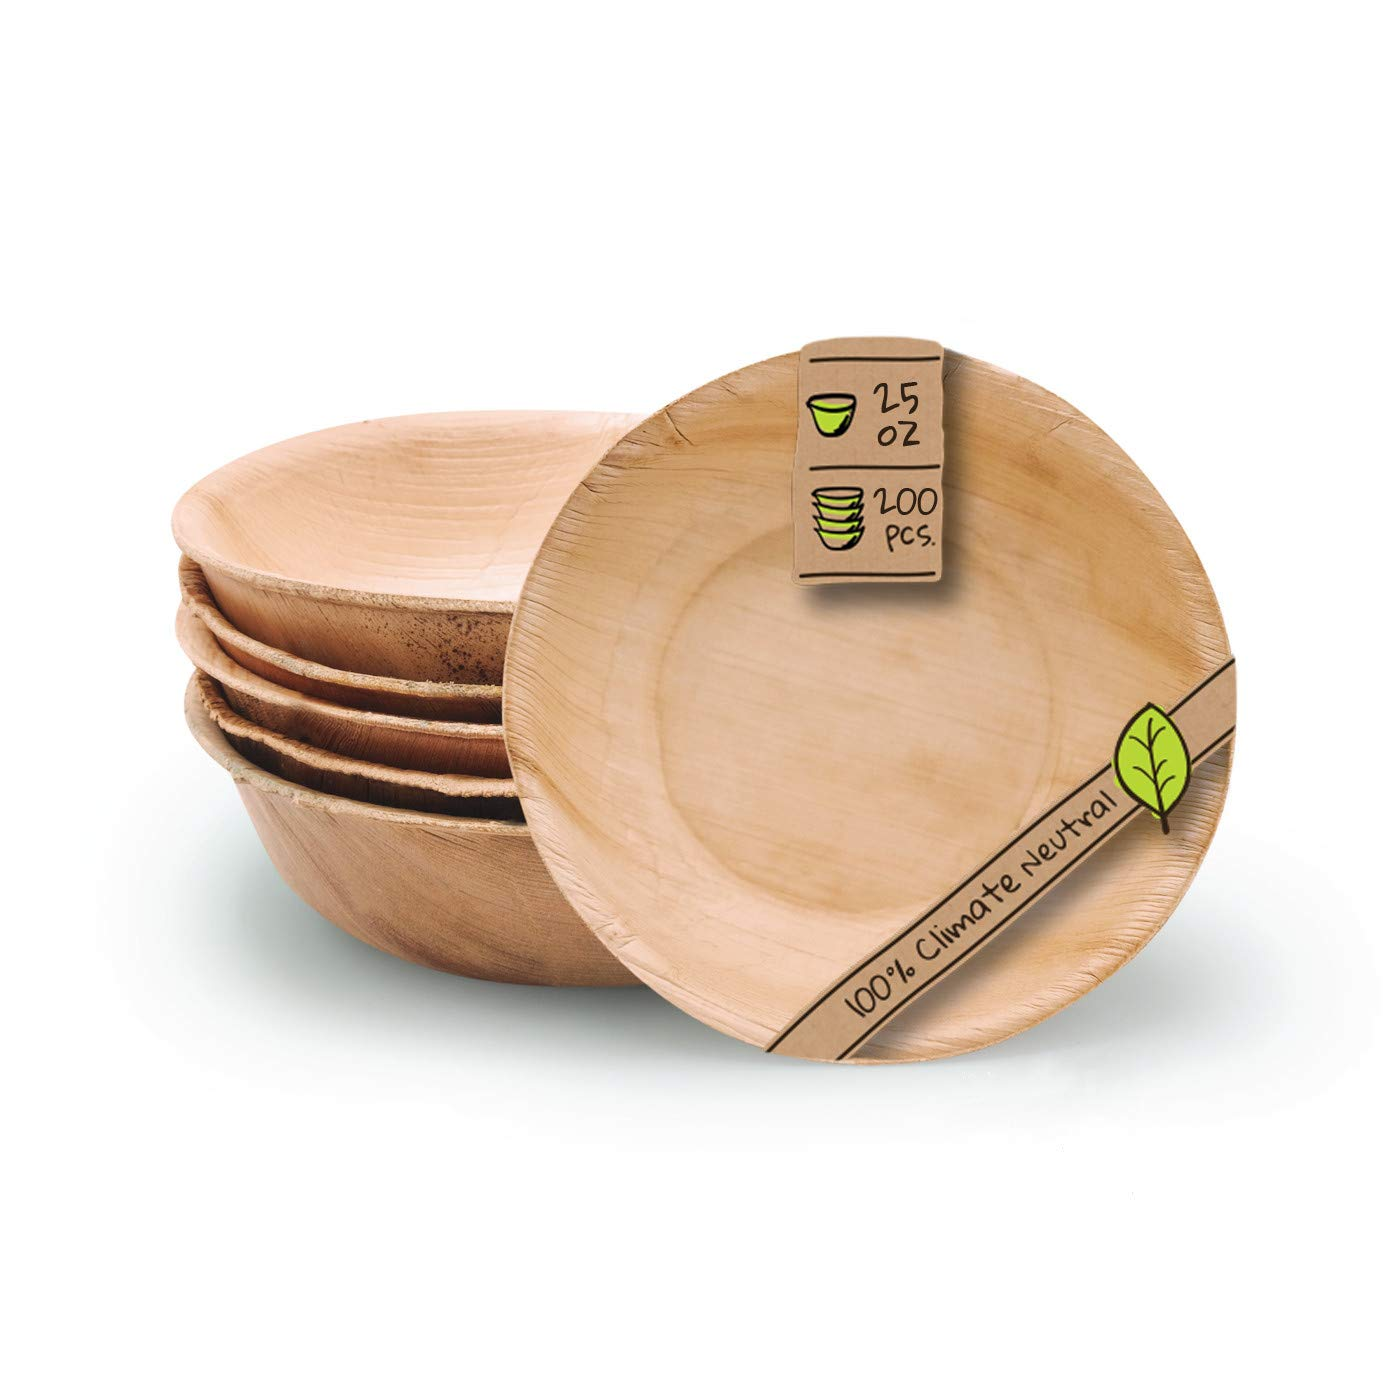 Naturally Chic Palm Leaf Compostable Bowls - 7 Inch Round Biodegradable Disposable Small Dinnerware Set - Eco Friendly - Bowls for Weddings, Parties, BBQs, Events (200 Pack)